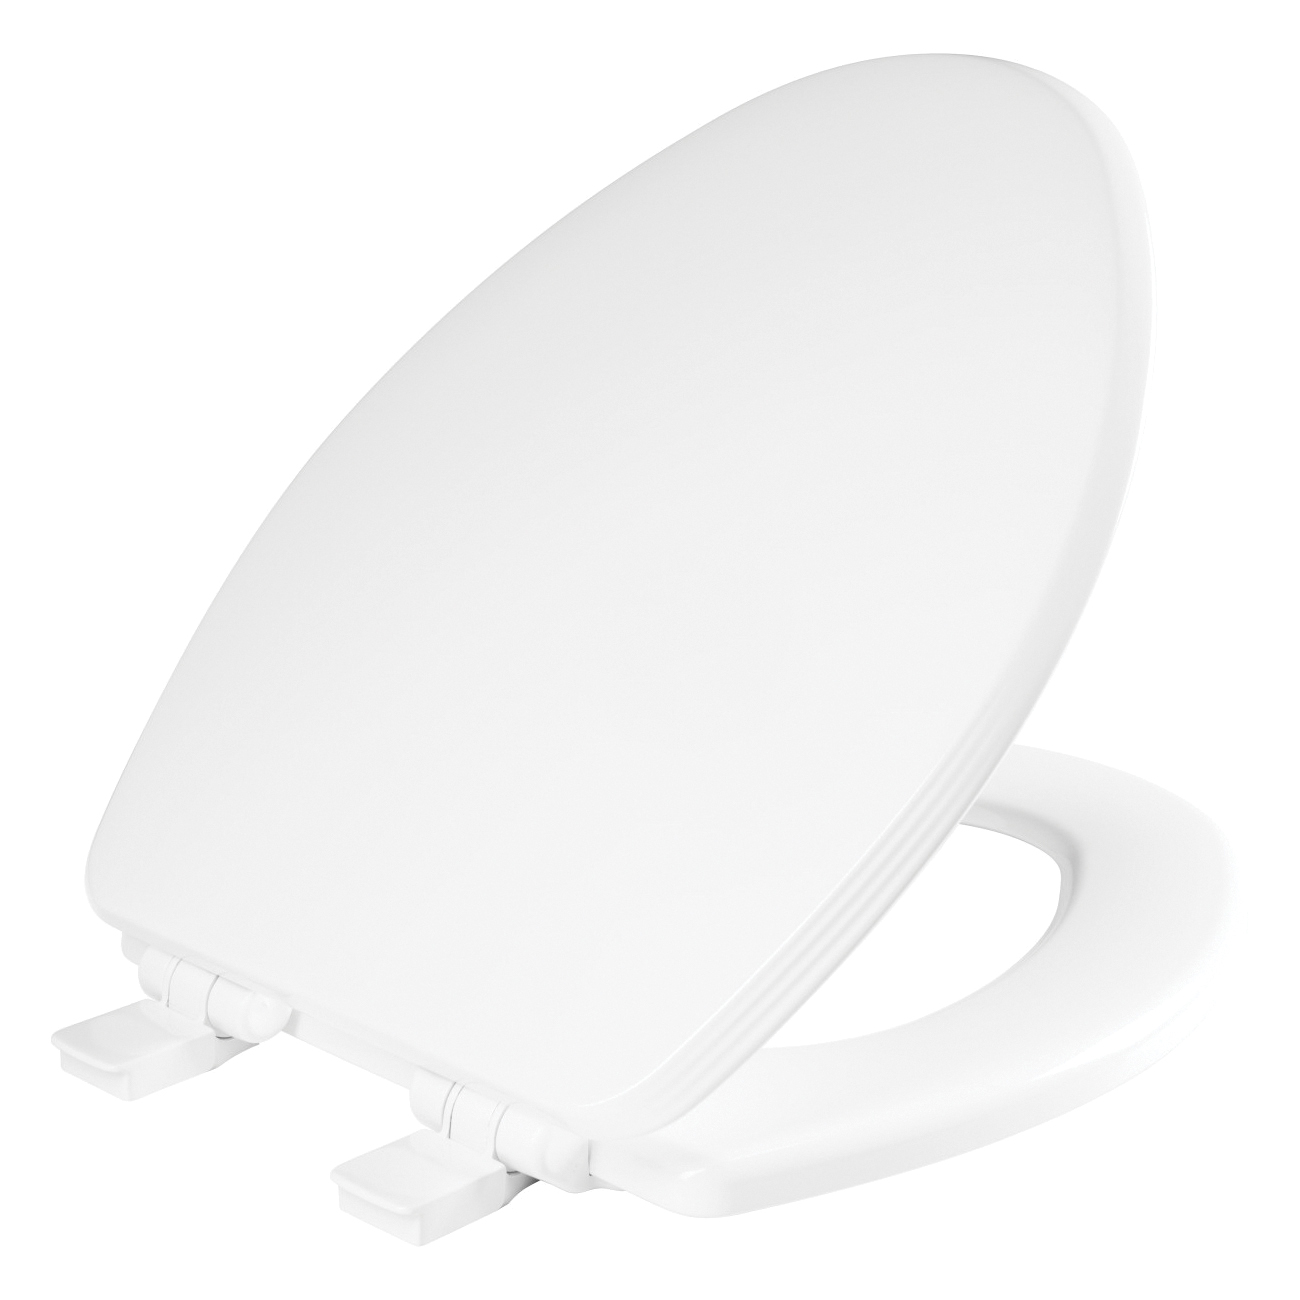 Church® 685E4 000 Toilet Seat With Cover, Ashland™, Elongated Bowl, Closed Front, Wood, Enamel High Gloss/White, Adjustable Hinge, Domestic